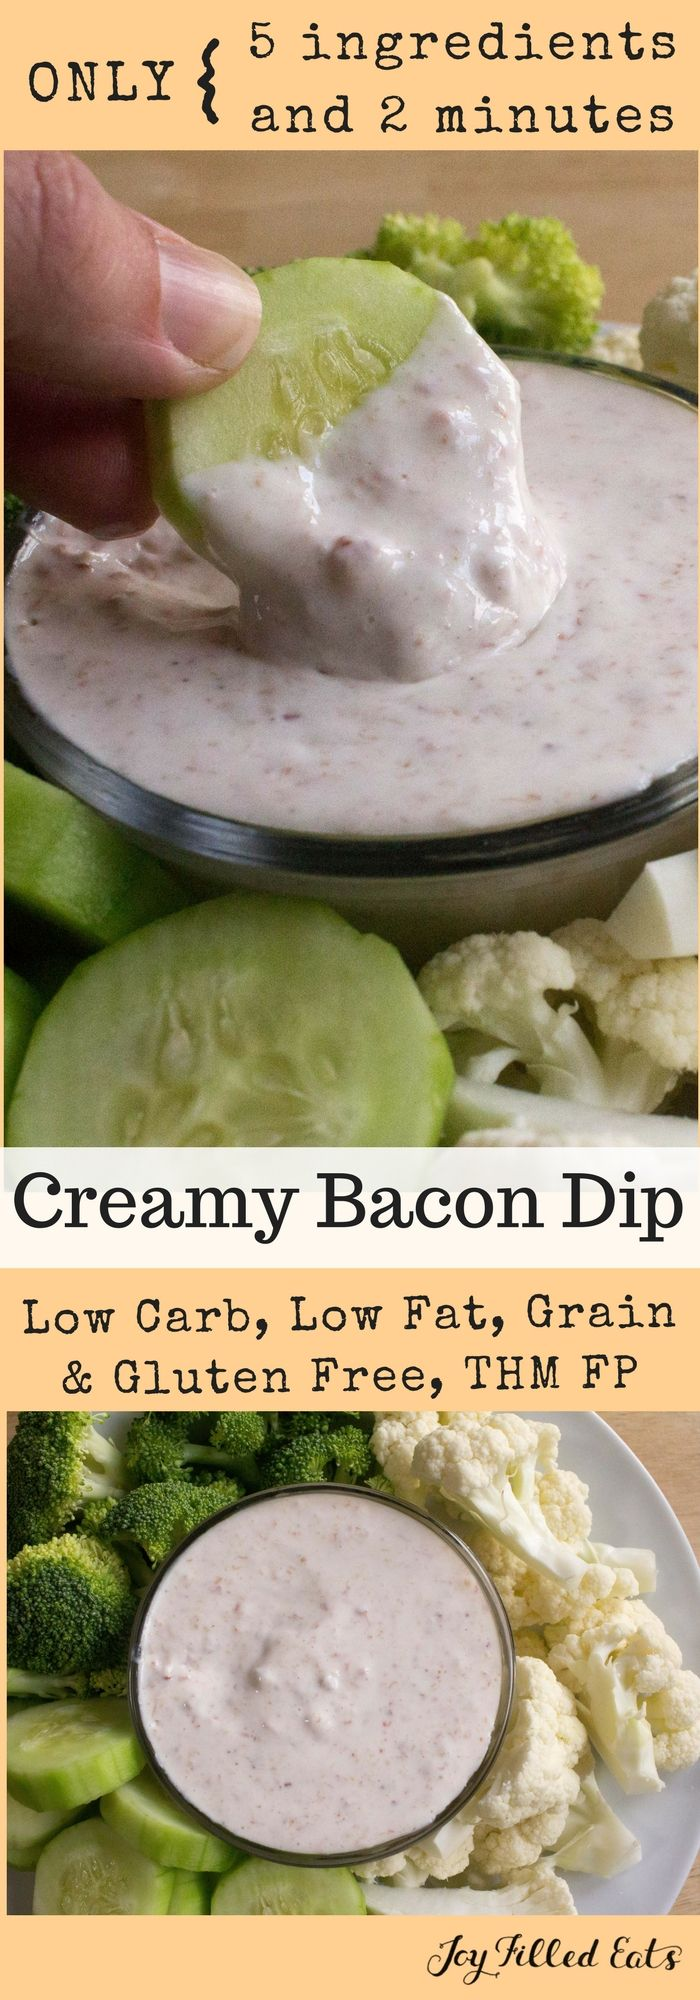 Creamy Bacon Dip - Low Carb, Low Fat, THM FP, Grain Gluten Sugar Free - My Creamy Bacon Dip will not disappoint. It is rich in flavor despite being low fat & low carb. Serve with veggies for a guilt free appetizer or side. via @joyfilledeats